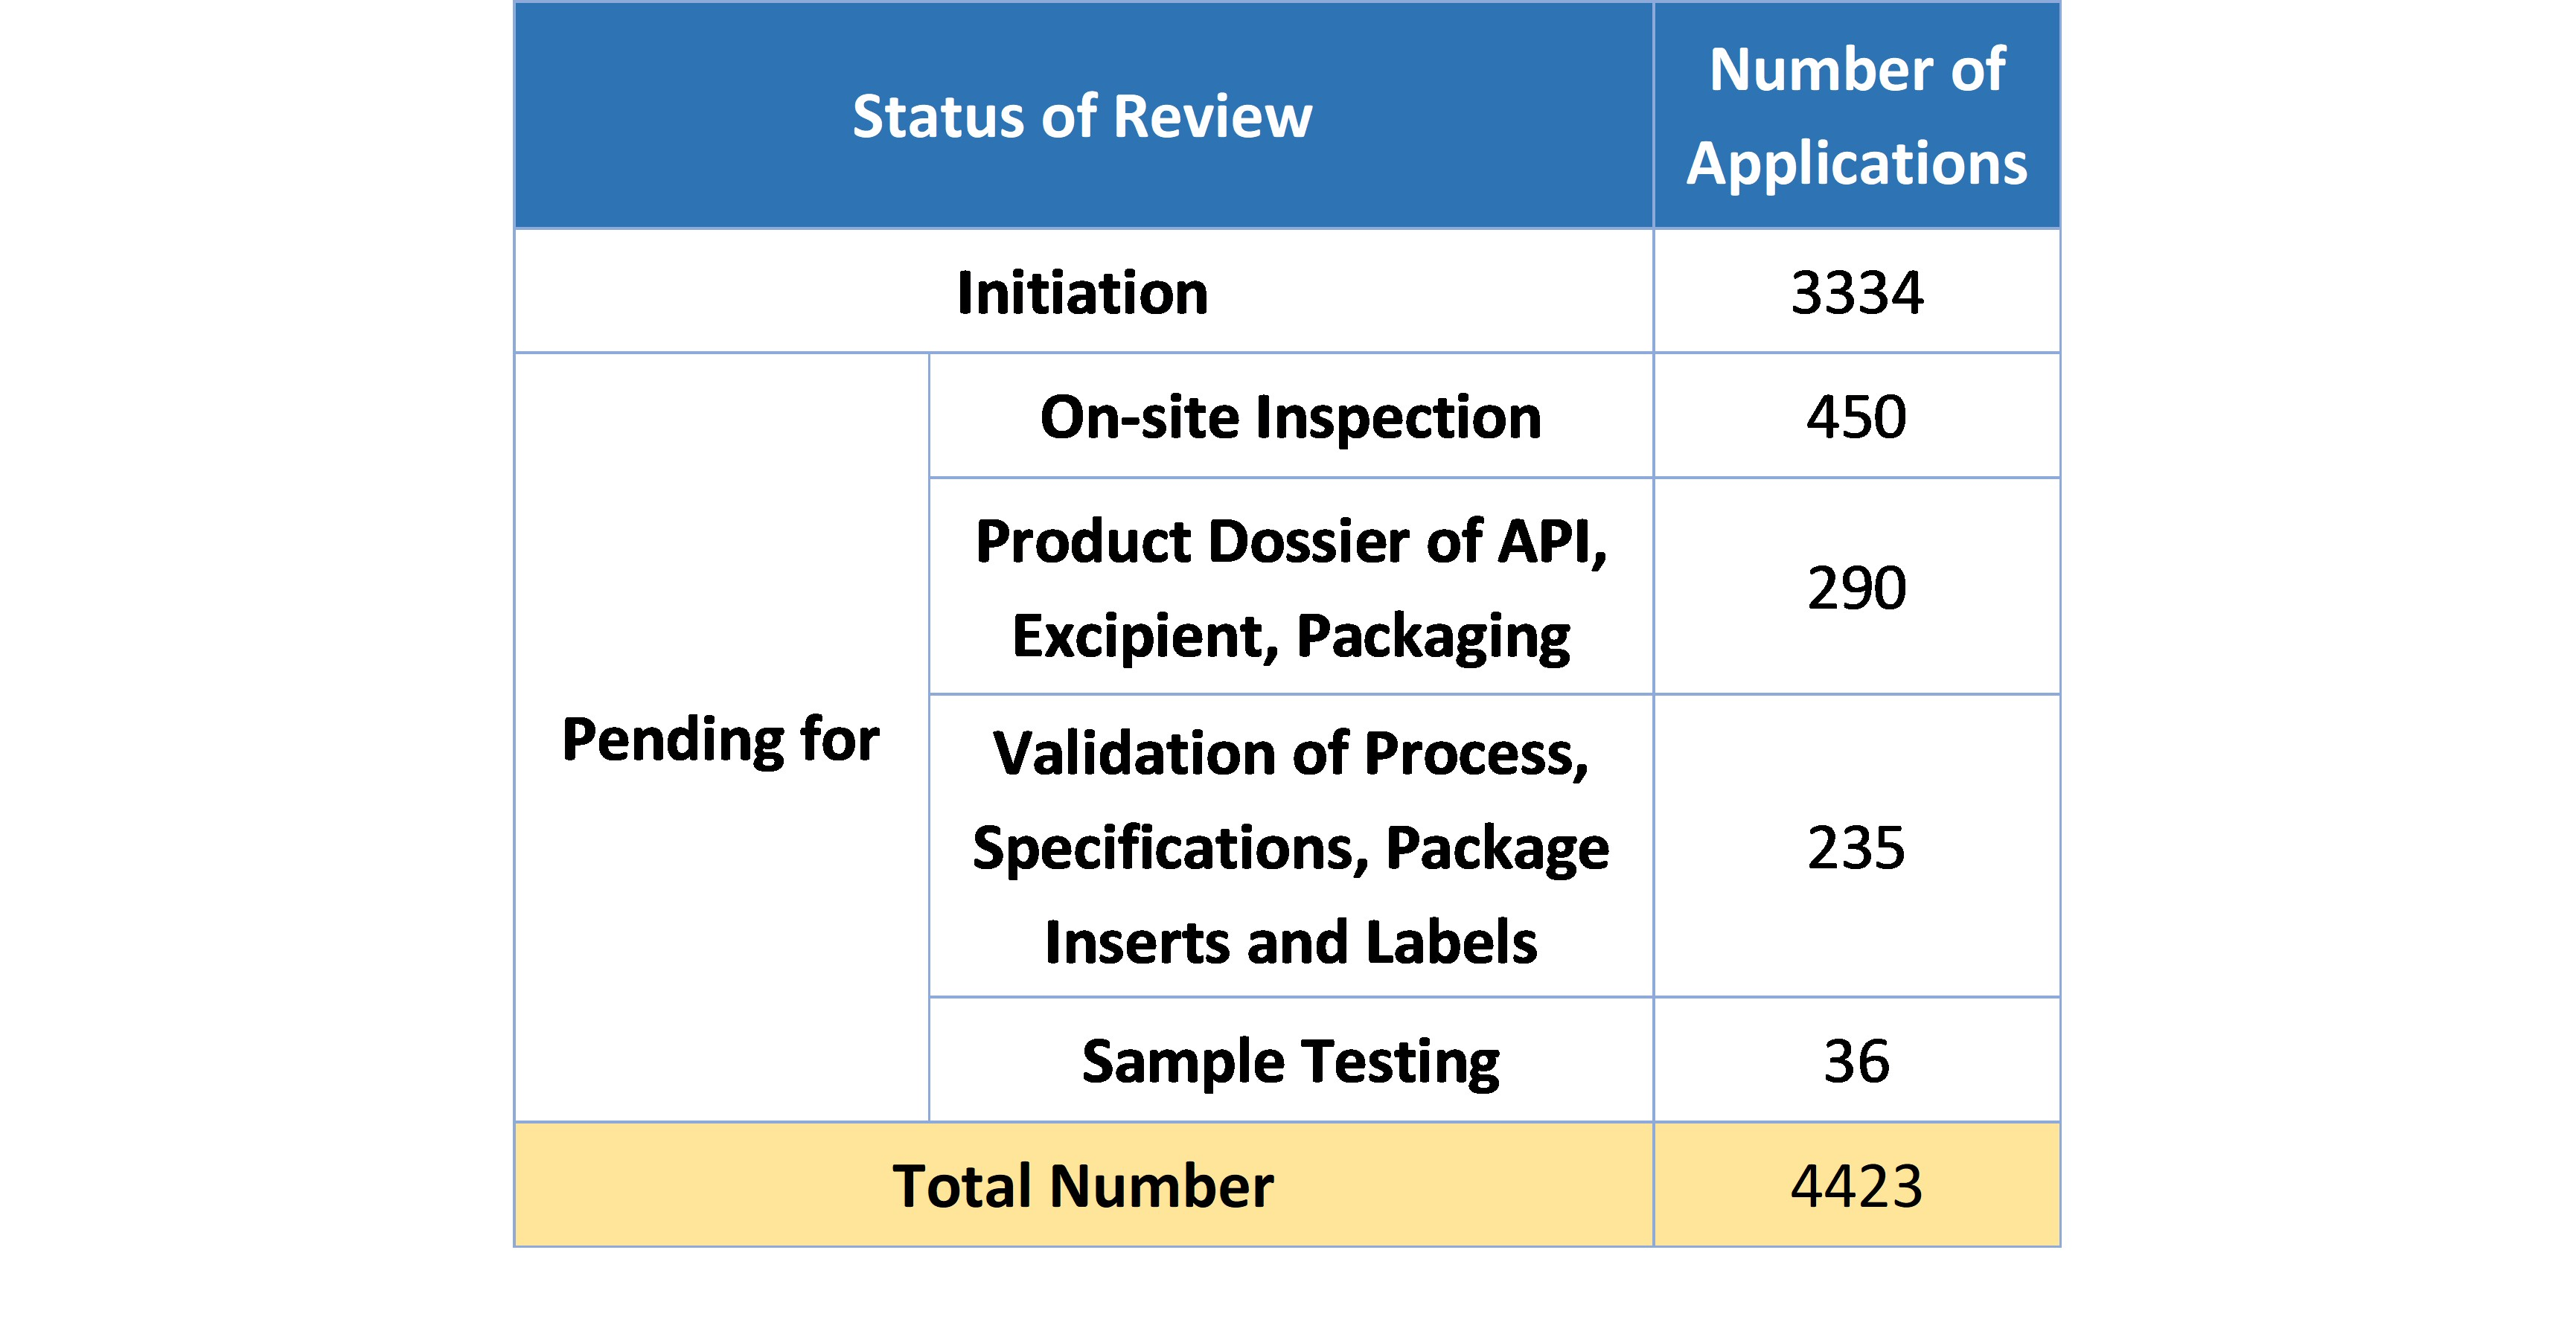 Table 2. Number of Applications under or Pending for Review and Approval in 2019